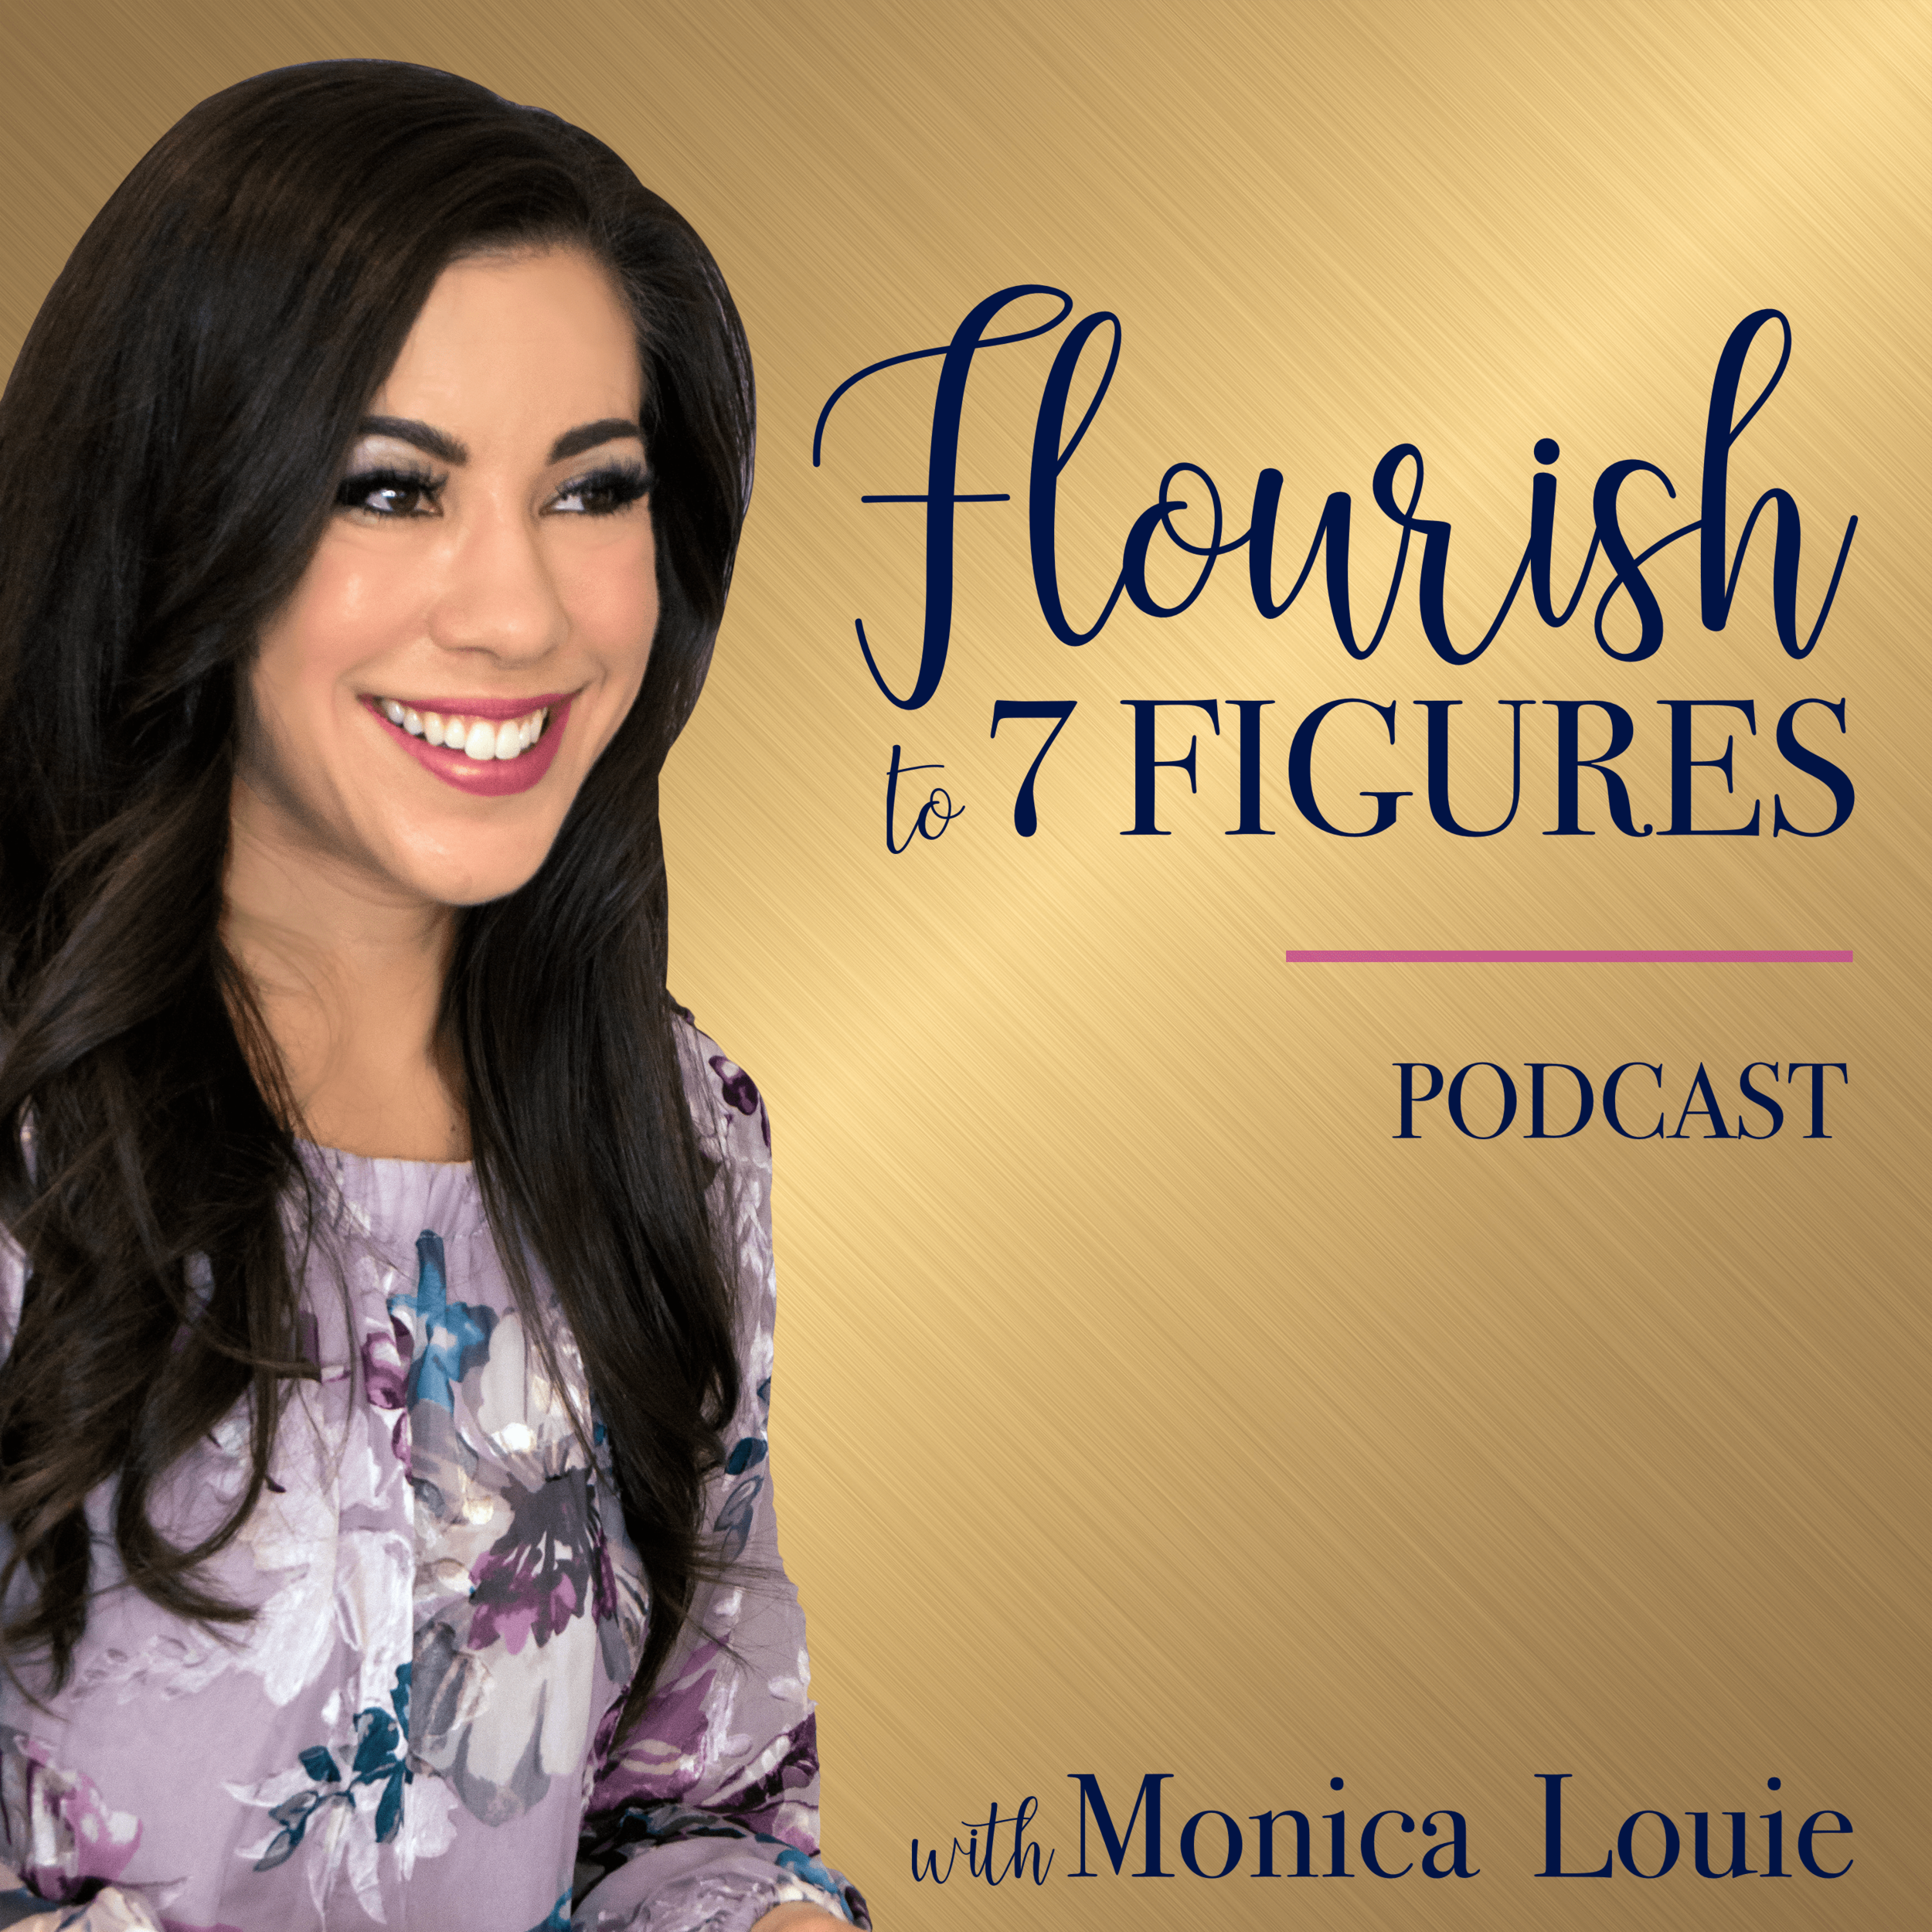 Monica Louie and I talked about how hiring an EA can change your biz for the better.